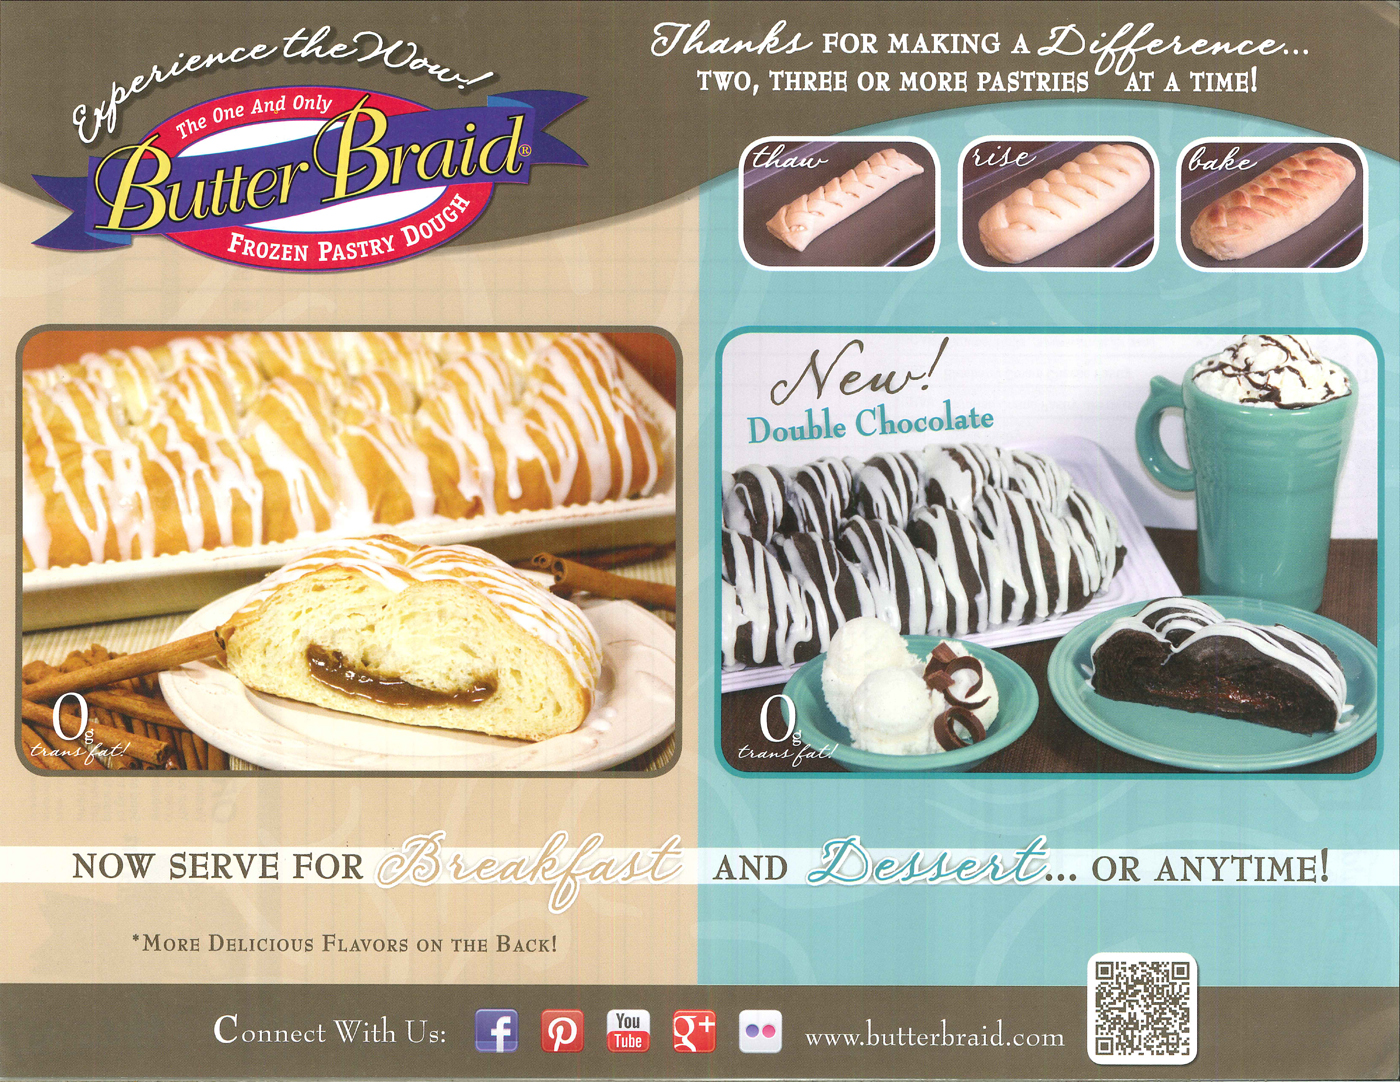 Butter Braid Pastry 2014 Brochure Image